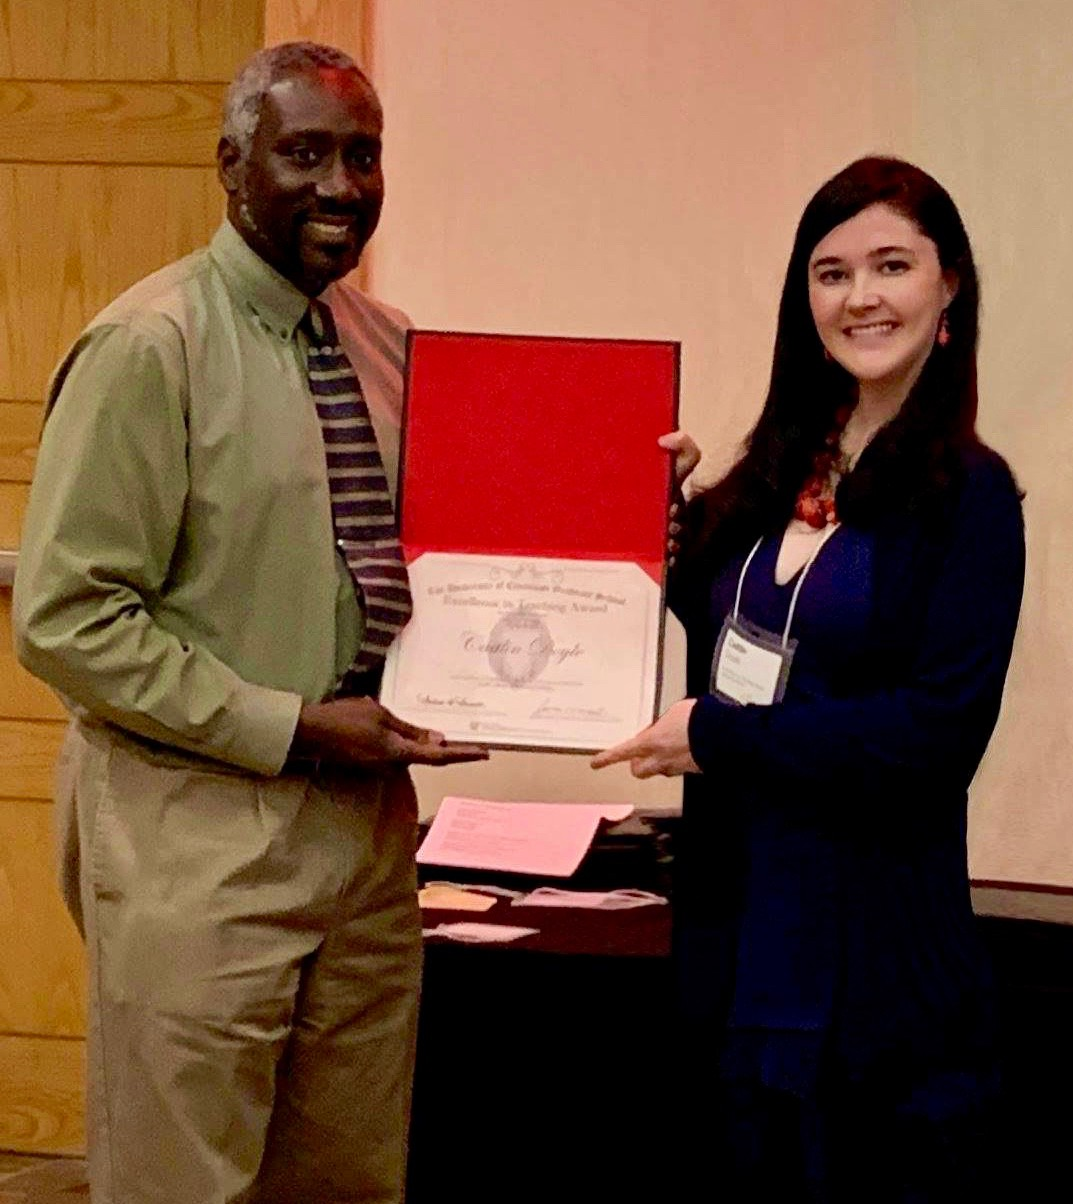 UC grad student Caitlin Doyle receives UC's Excellence in Teaching Award from a university representative.